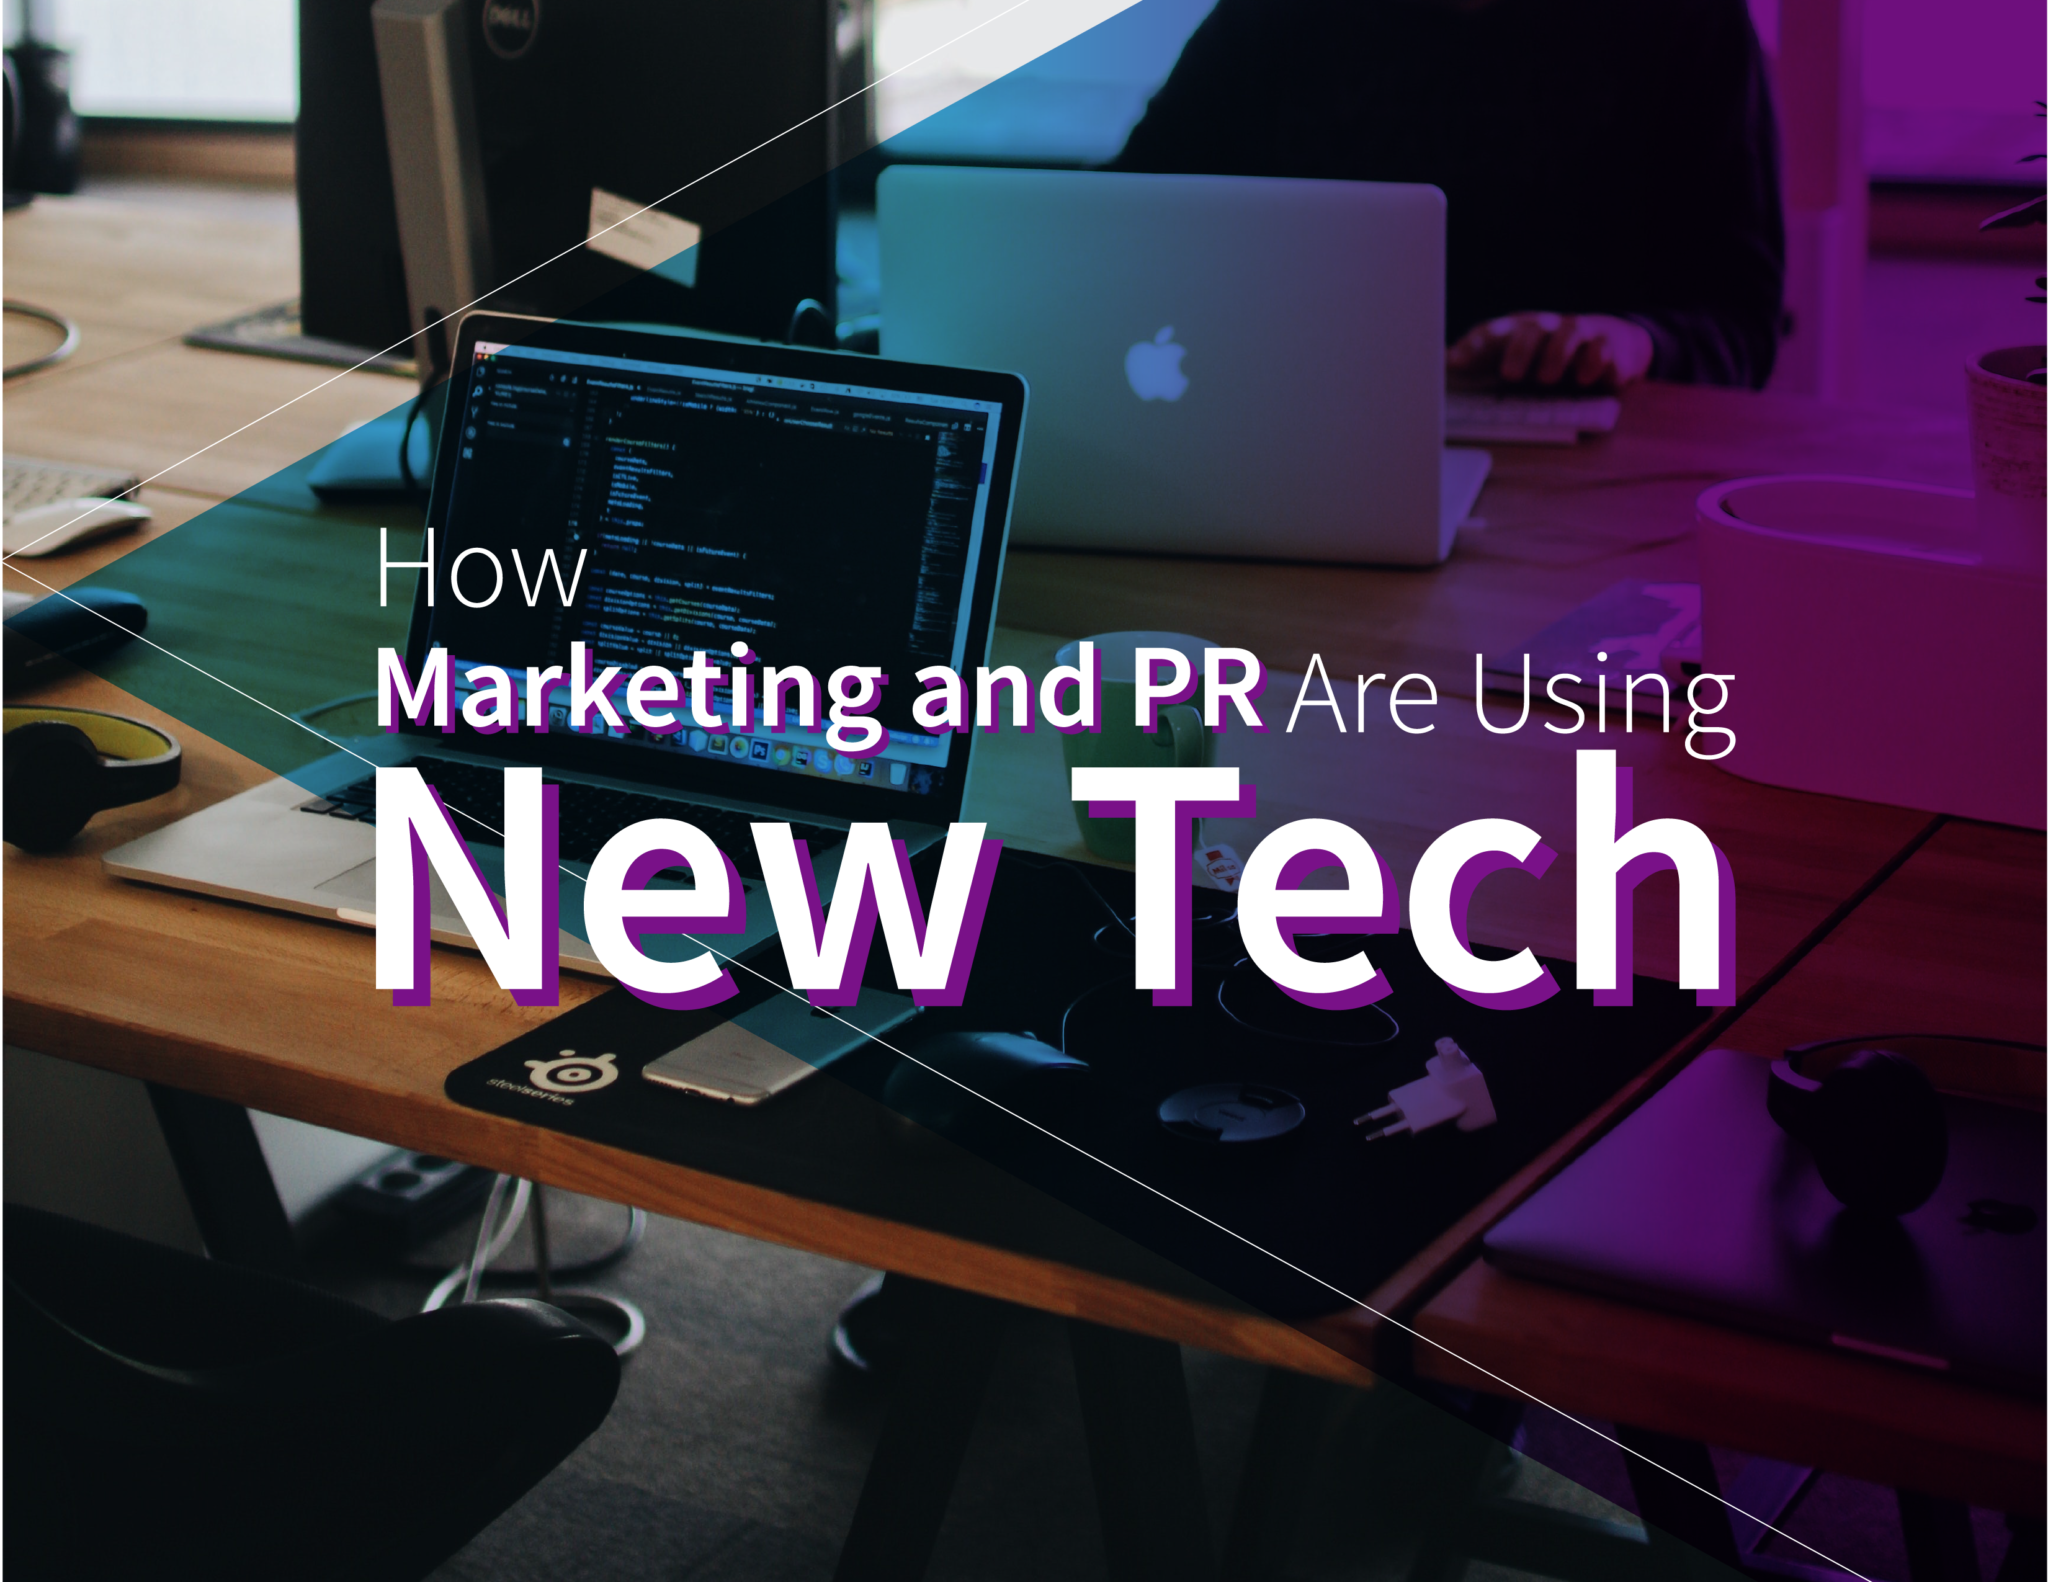 New tech for your marketing plan